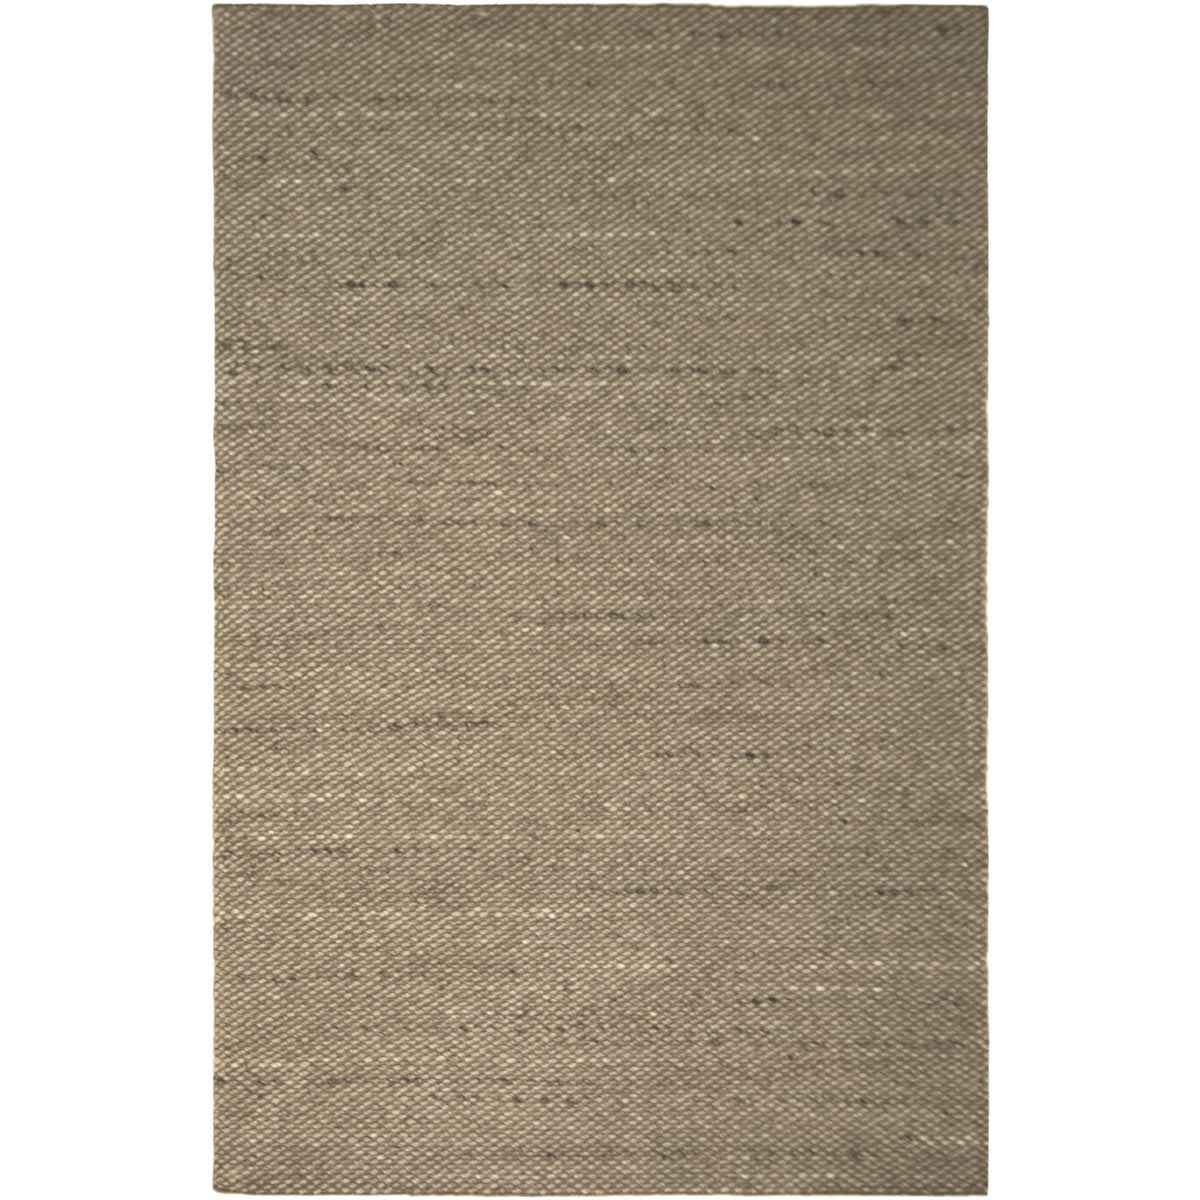 Arava Rug 01 Brown 1